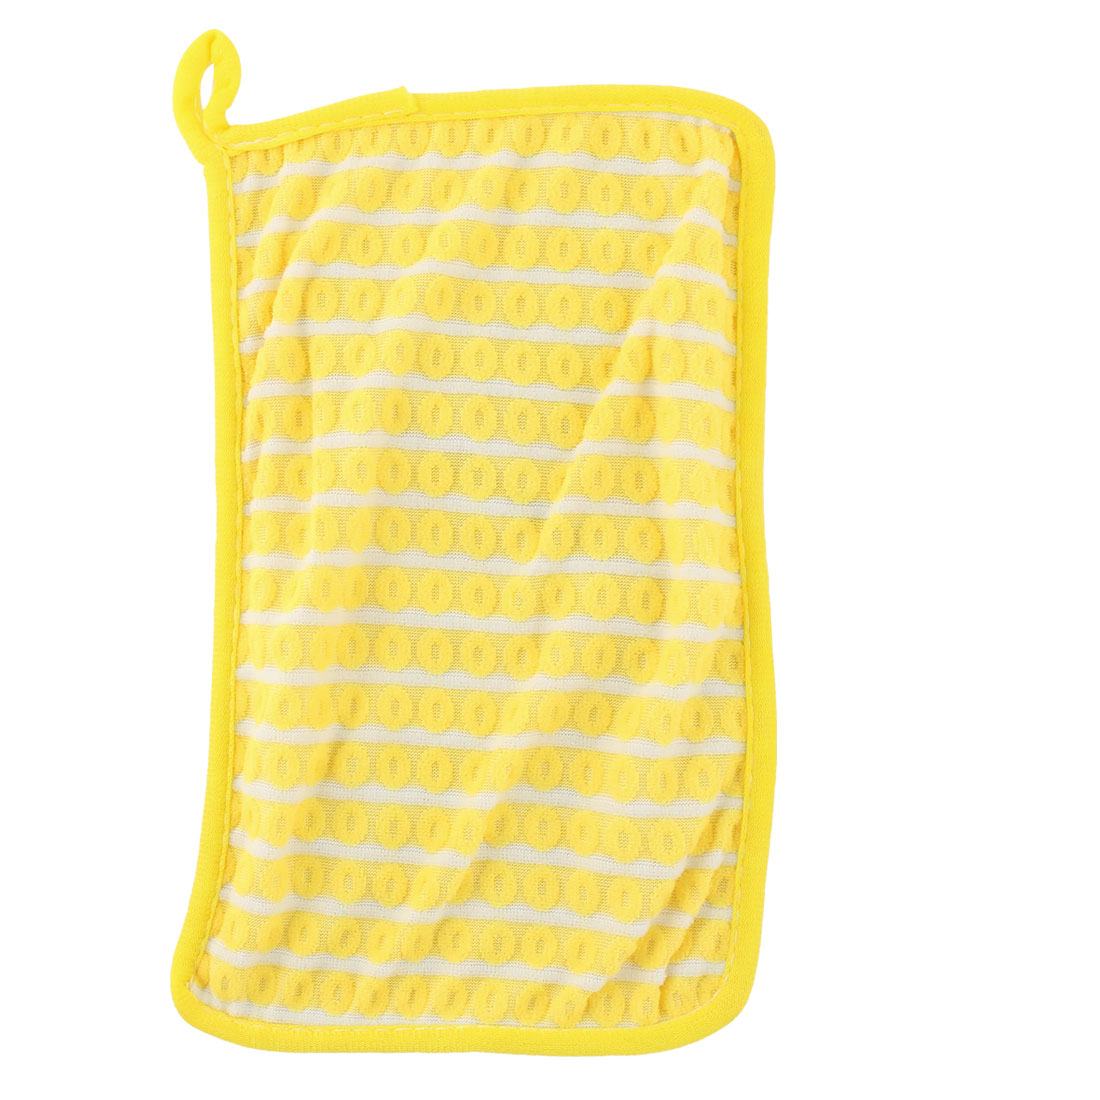 Home Kitchenware Rectangle Design Bowl Pot Dish Scrub Wiping Cleaning Cloth Yellow